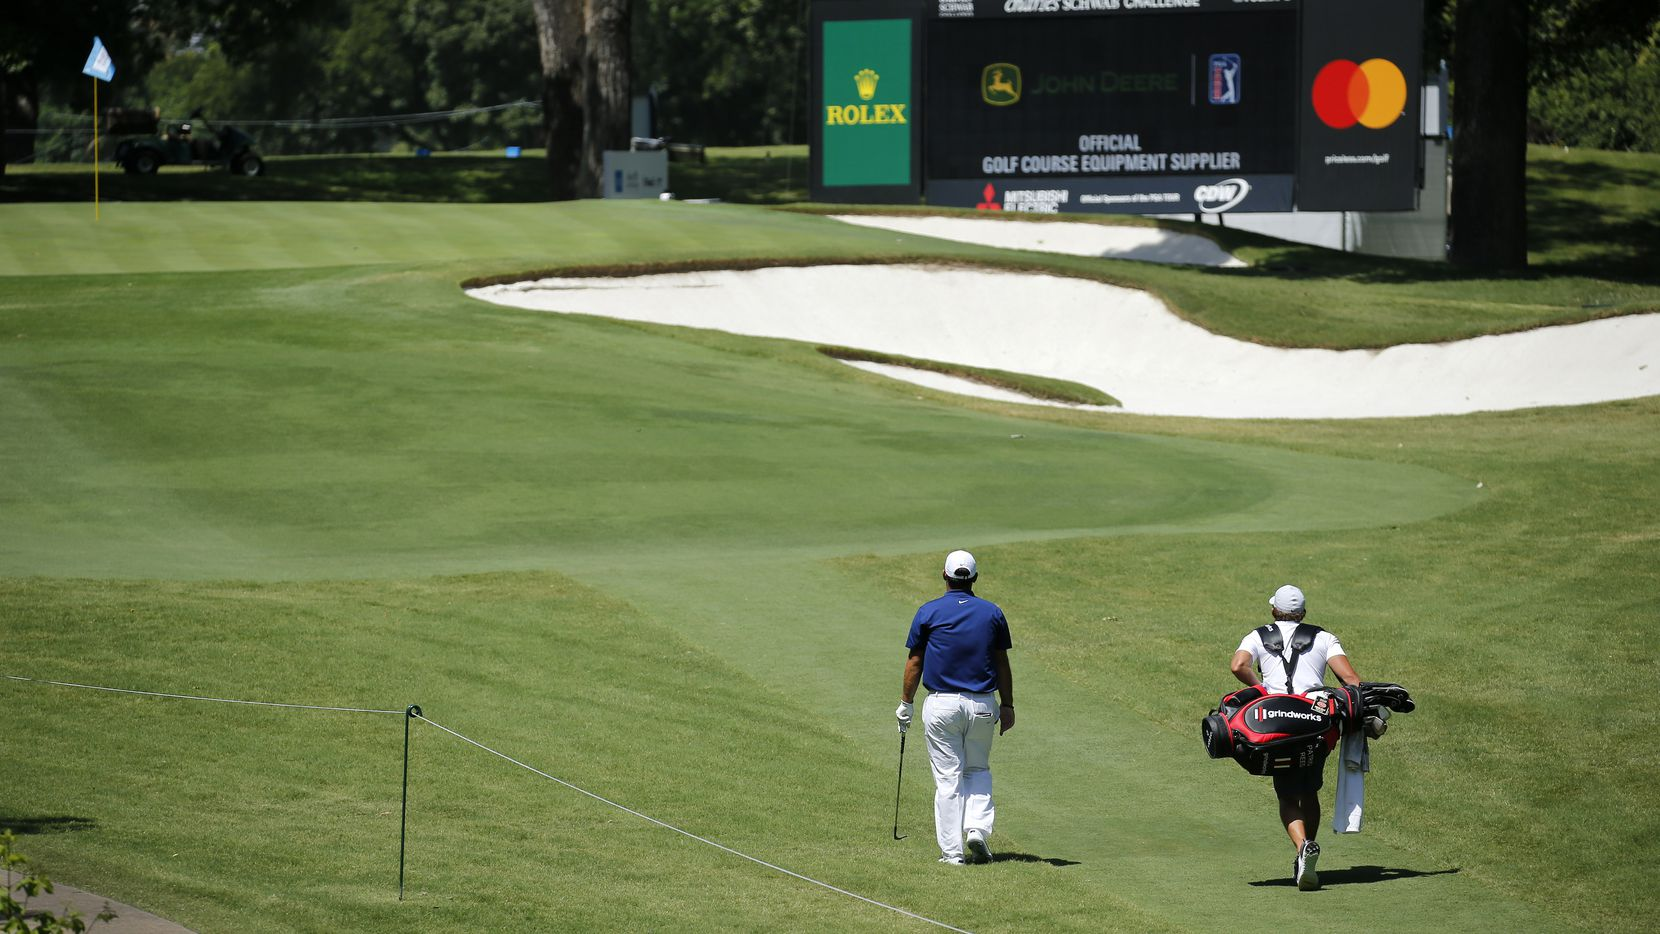 Golfer Patrick Reed and his caddie walk alone up the par-3 No. 8 during a Charles Schwab Challenge practice round at Colonial Country Club in Fort Worth on Tuesday, June 9, 2020. Reed played the round without playing partners. The Challenge is the first PGA Tour event since the COVID-19 pandemic began.